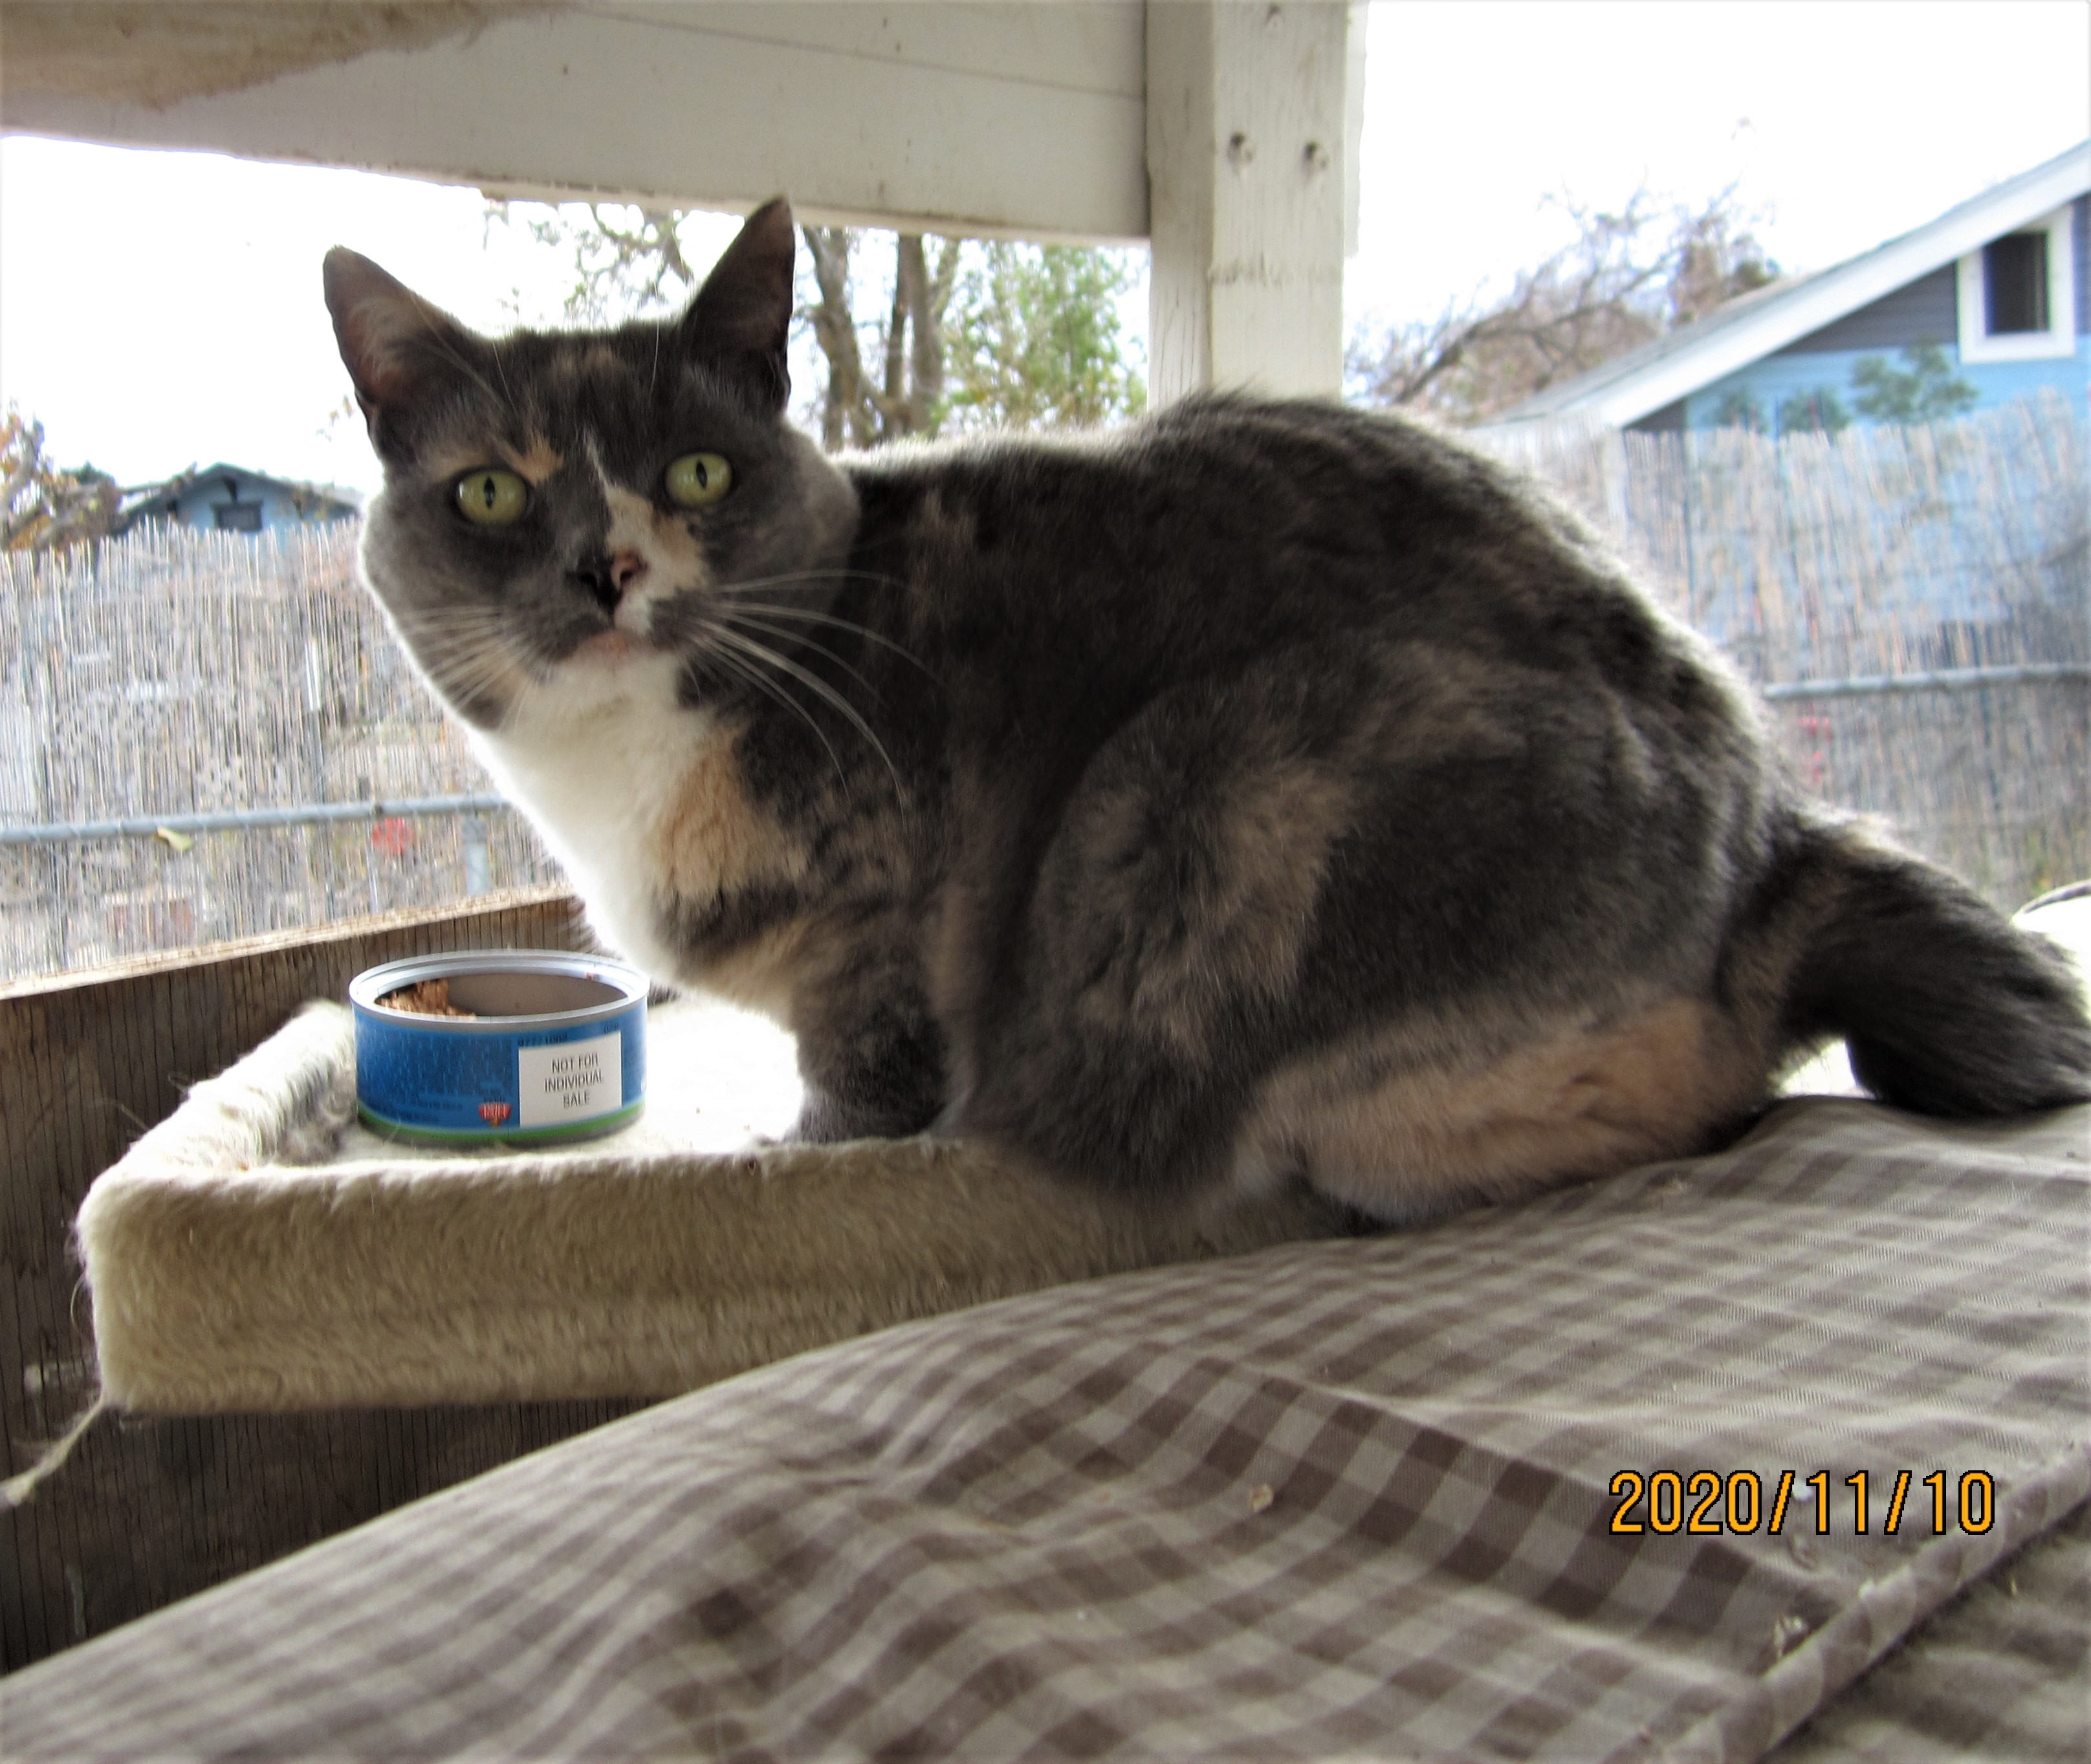 adoptable Cat in Nampa,ID named Puff